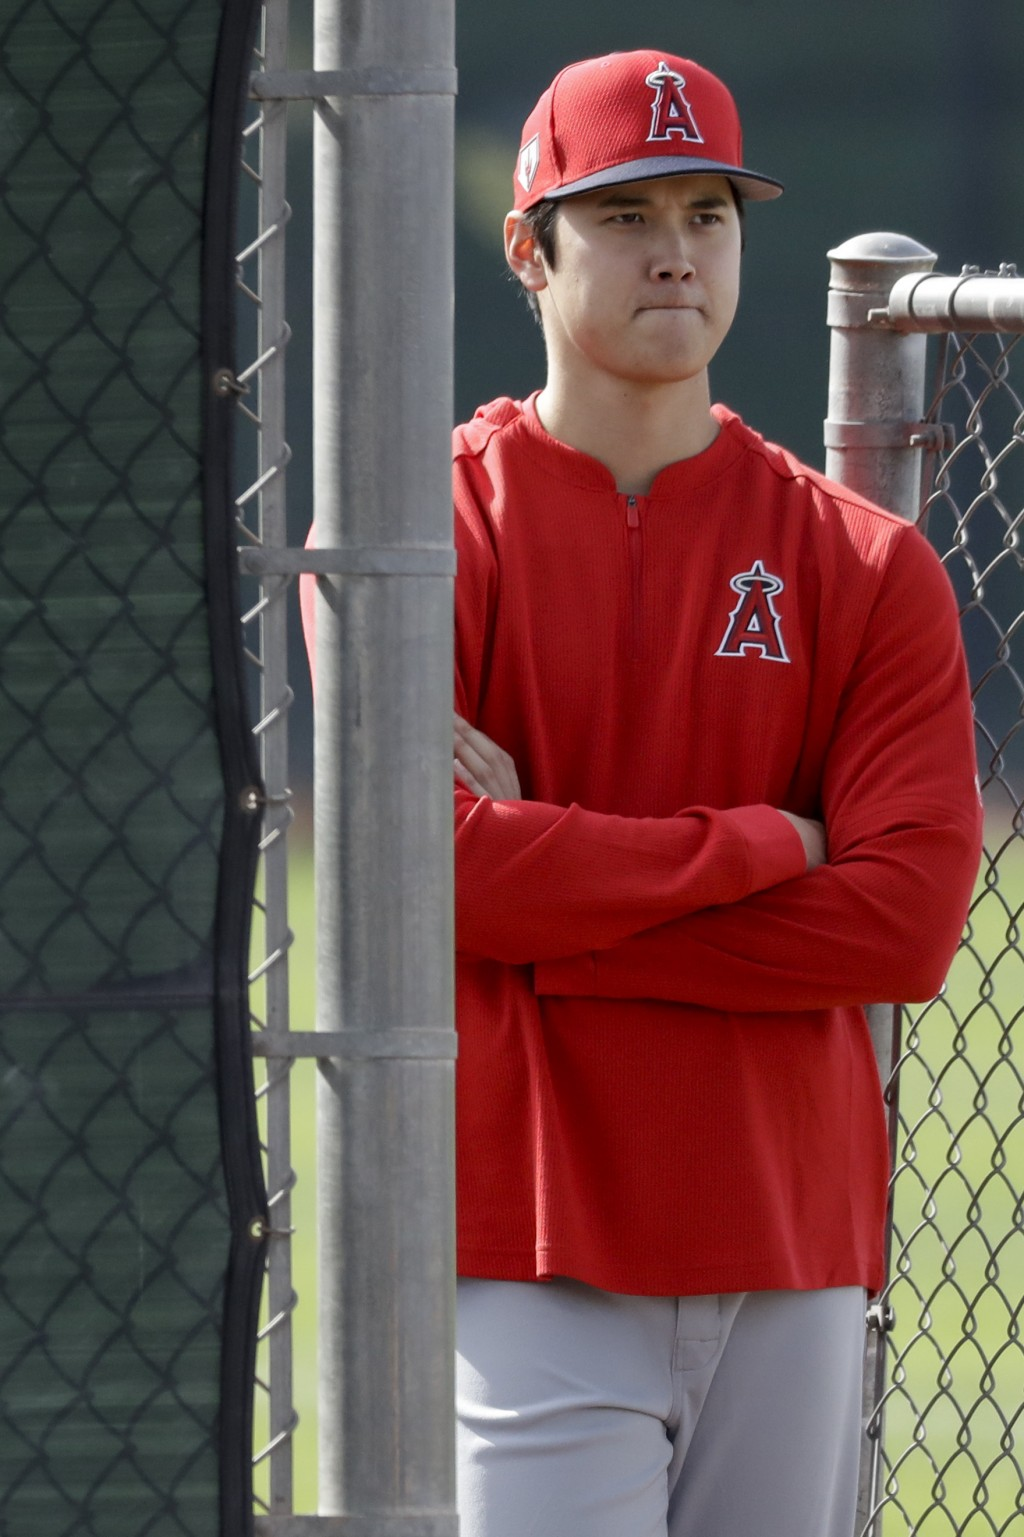 Los Angeles Angels Shohei Ohtani, of Japan, watches pitching practice at their spring baseball training facility in Tempe, Ariz., Friday, Feb. 15, 201...